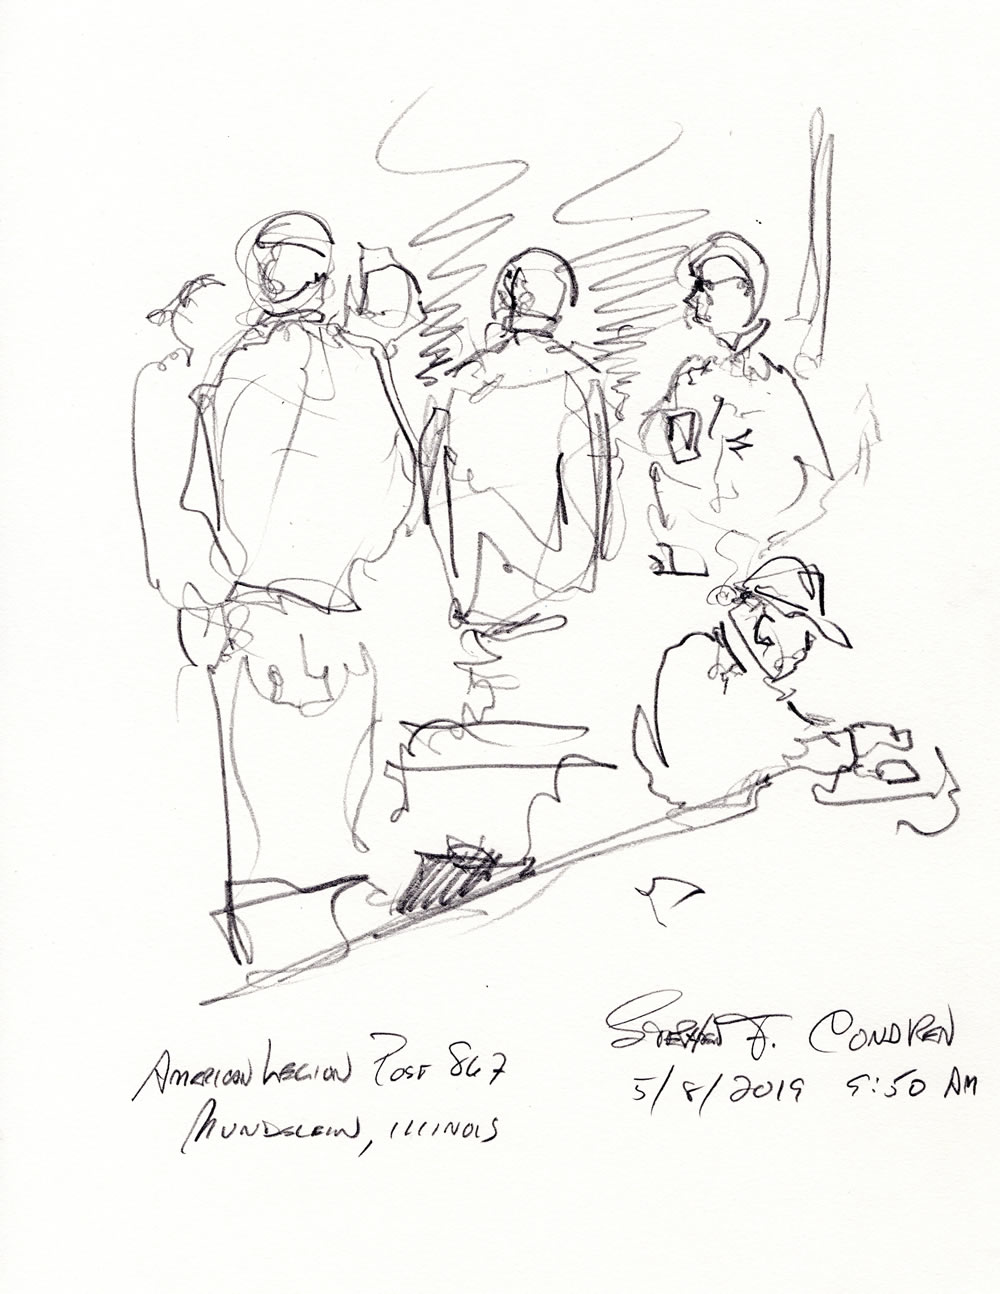 American Legion drawing #297Z pen & ink drawing with prints by artist Stephen F. Condren at Condren Galleries.